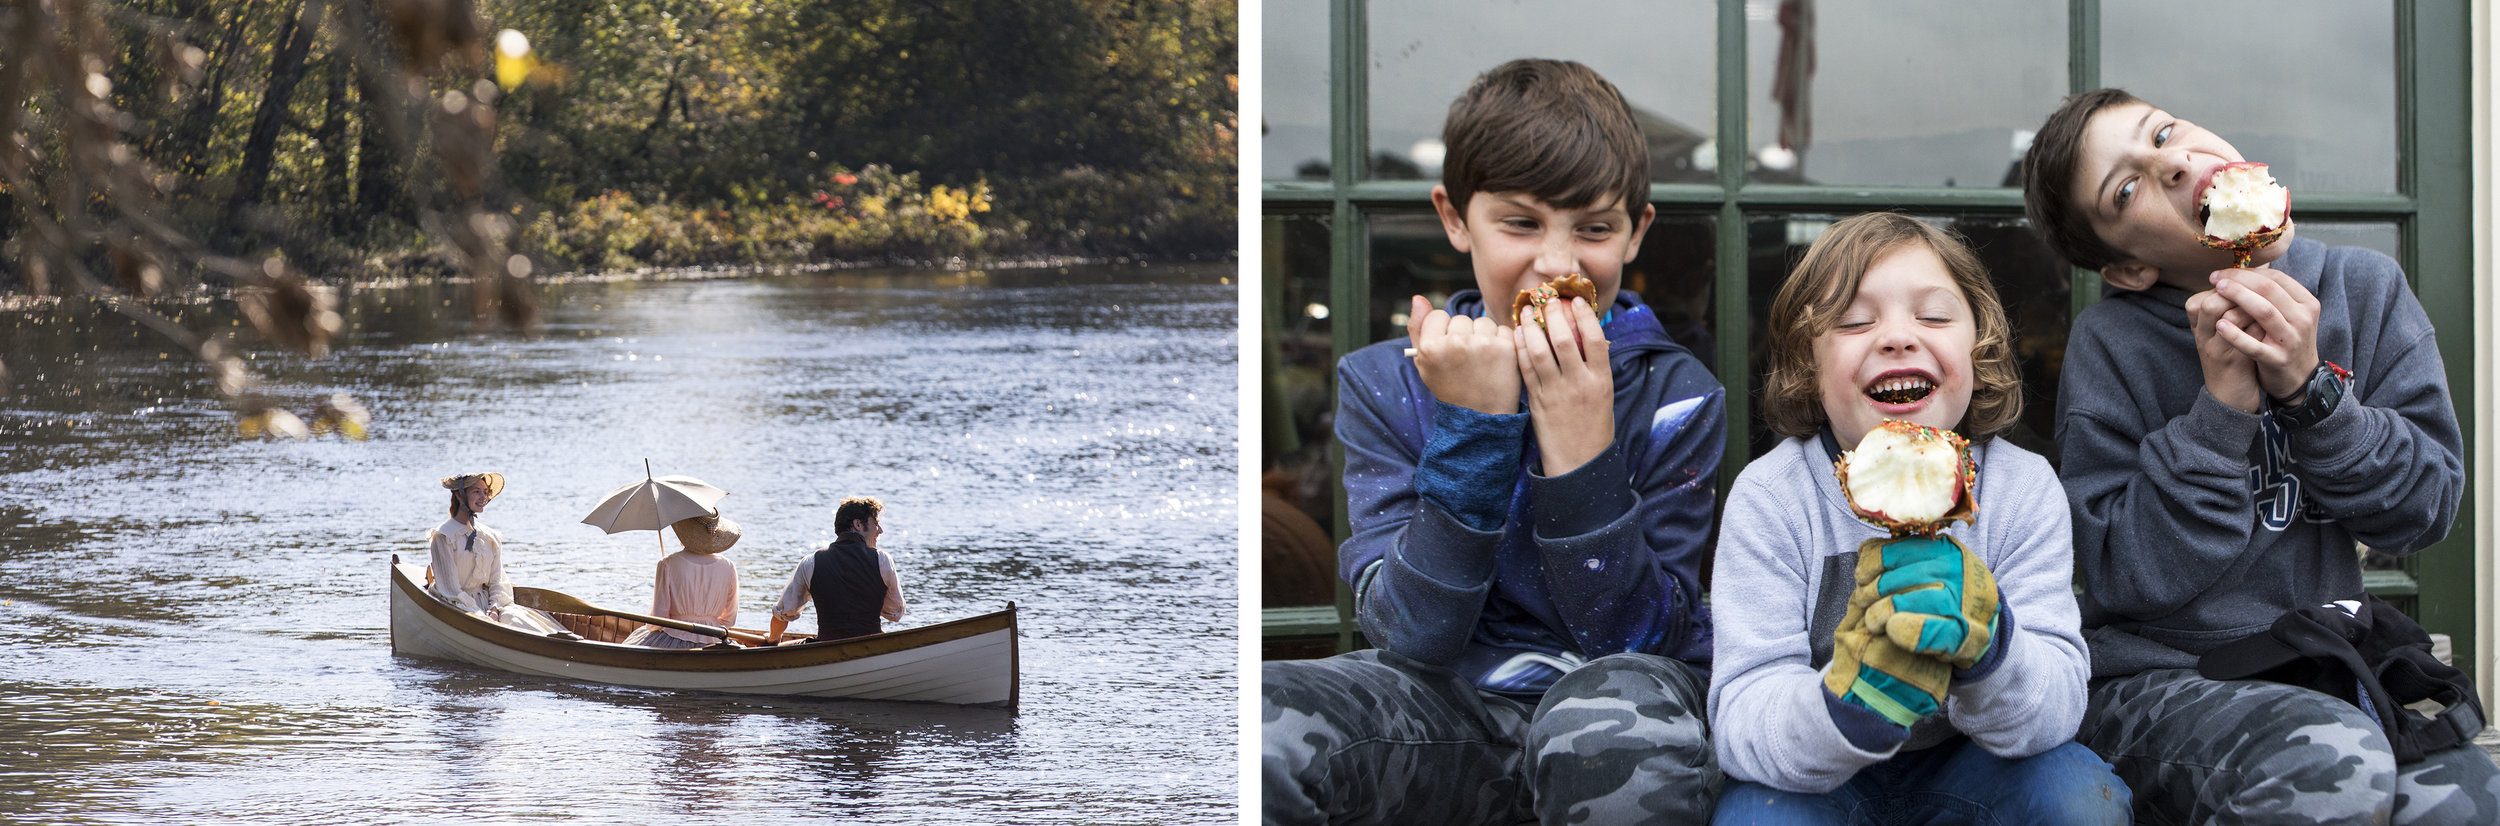 "(Left) Stand-in actors row past the the Old Manse Boat House along the Concord River during filming of ""Little Women"" at the Minute Man National Historical Park. (Right) (L-R) Truman Faroni, 9, Lennon Faroni, 5, and Alden Faroni, 11, all of Belmont, enjoy their caramel apples at Wilson Farm in Lexington."